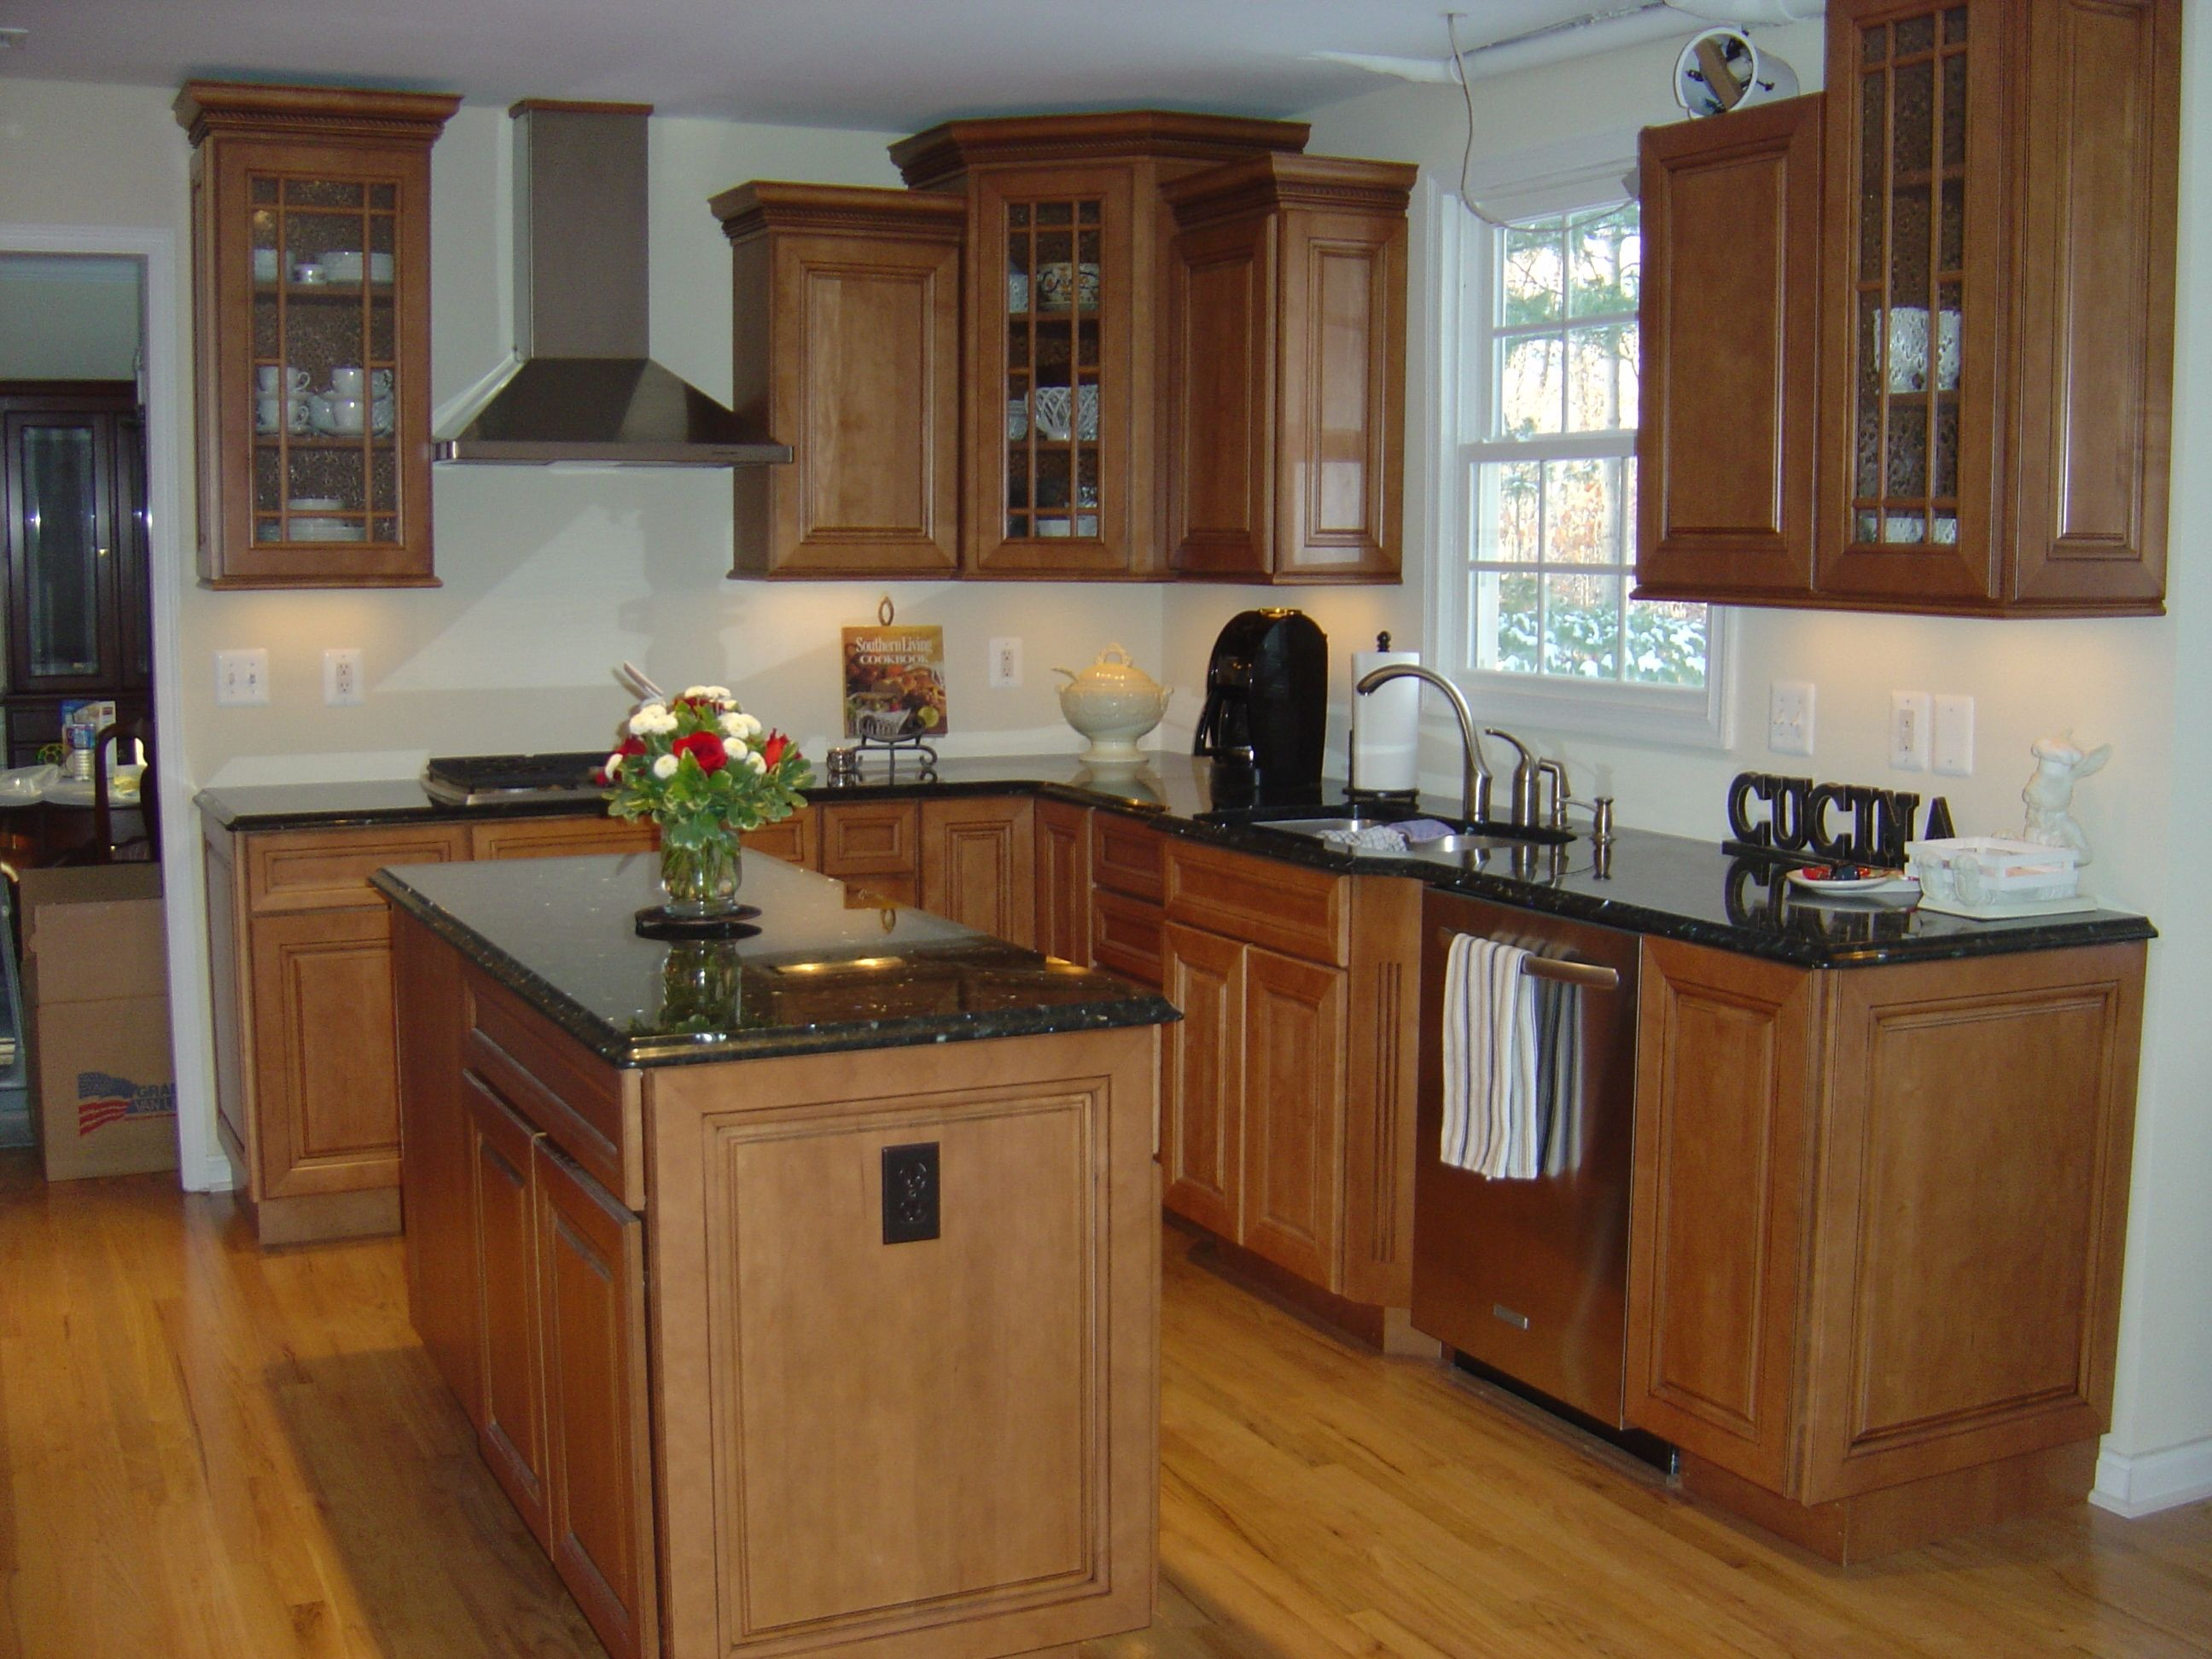 Maple Cabinets With Black Countertops Kitchen Cabinets And Countertops Maple Cabinets Kitchen Design